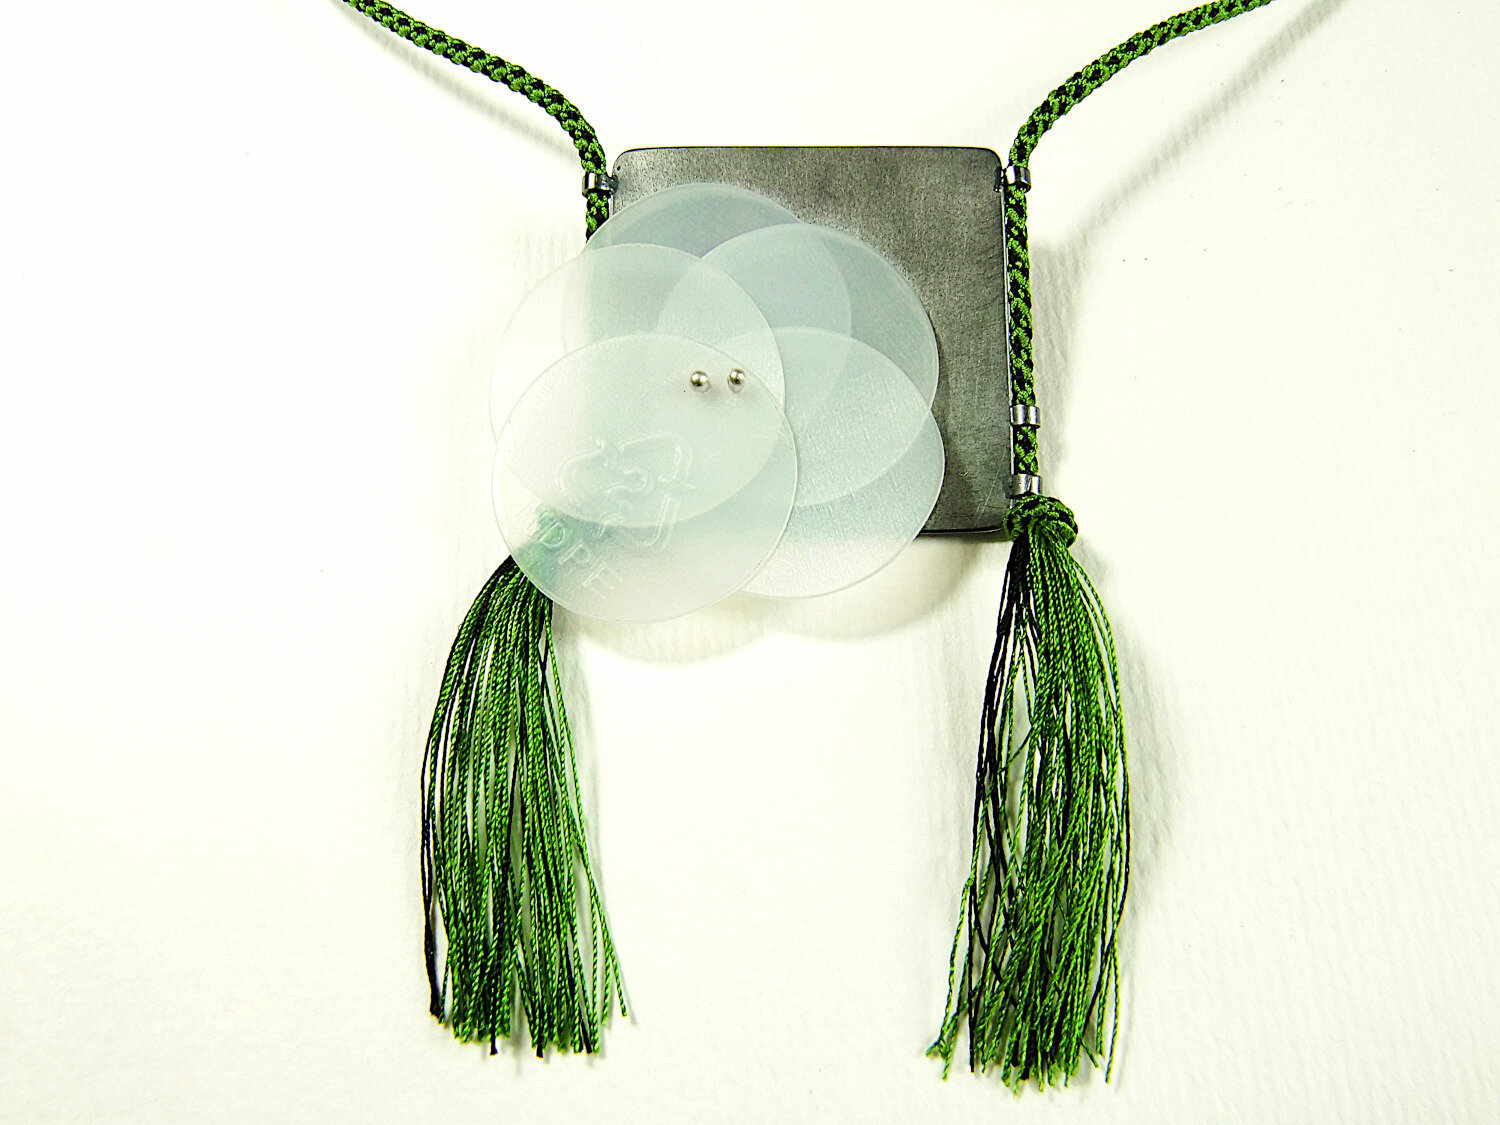 detail-green-kumihimo-neklace-silver-pendant-with-recycled-plastic-hbm107-8722.JPG